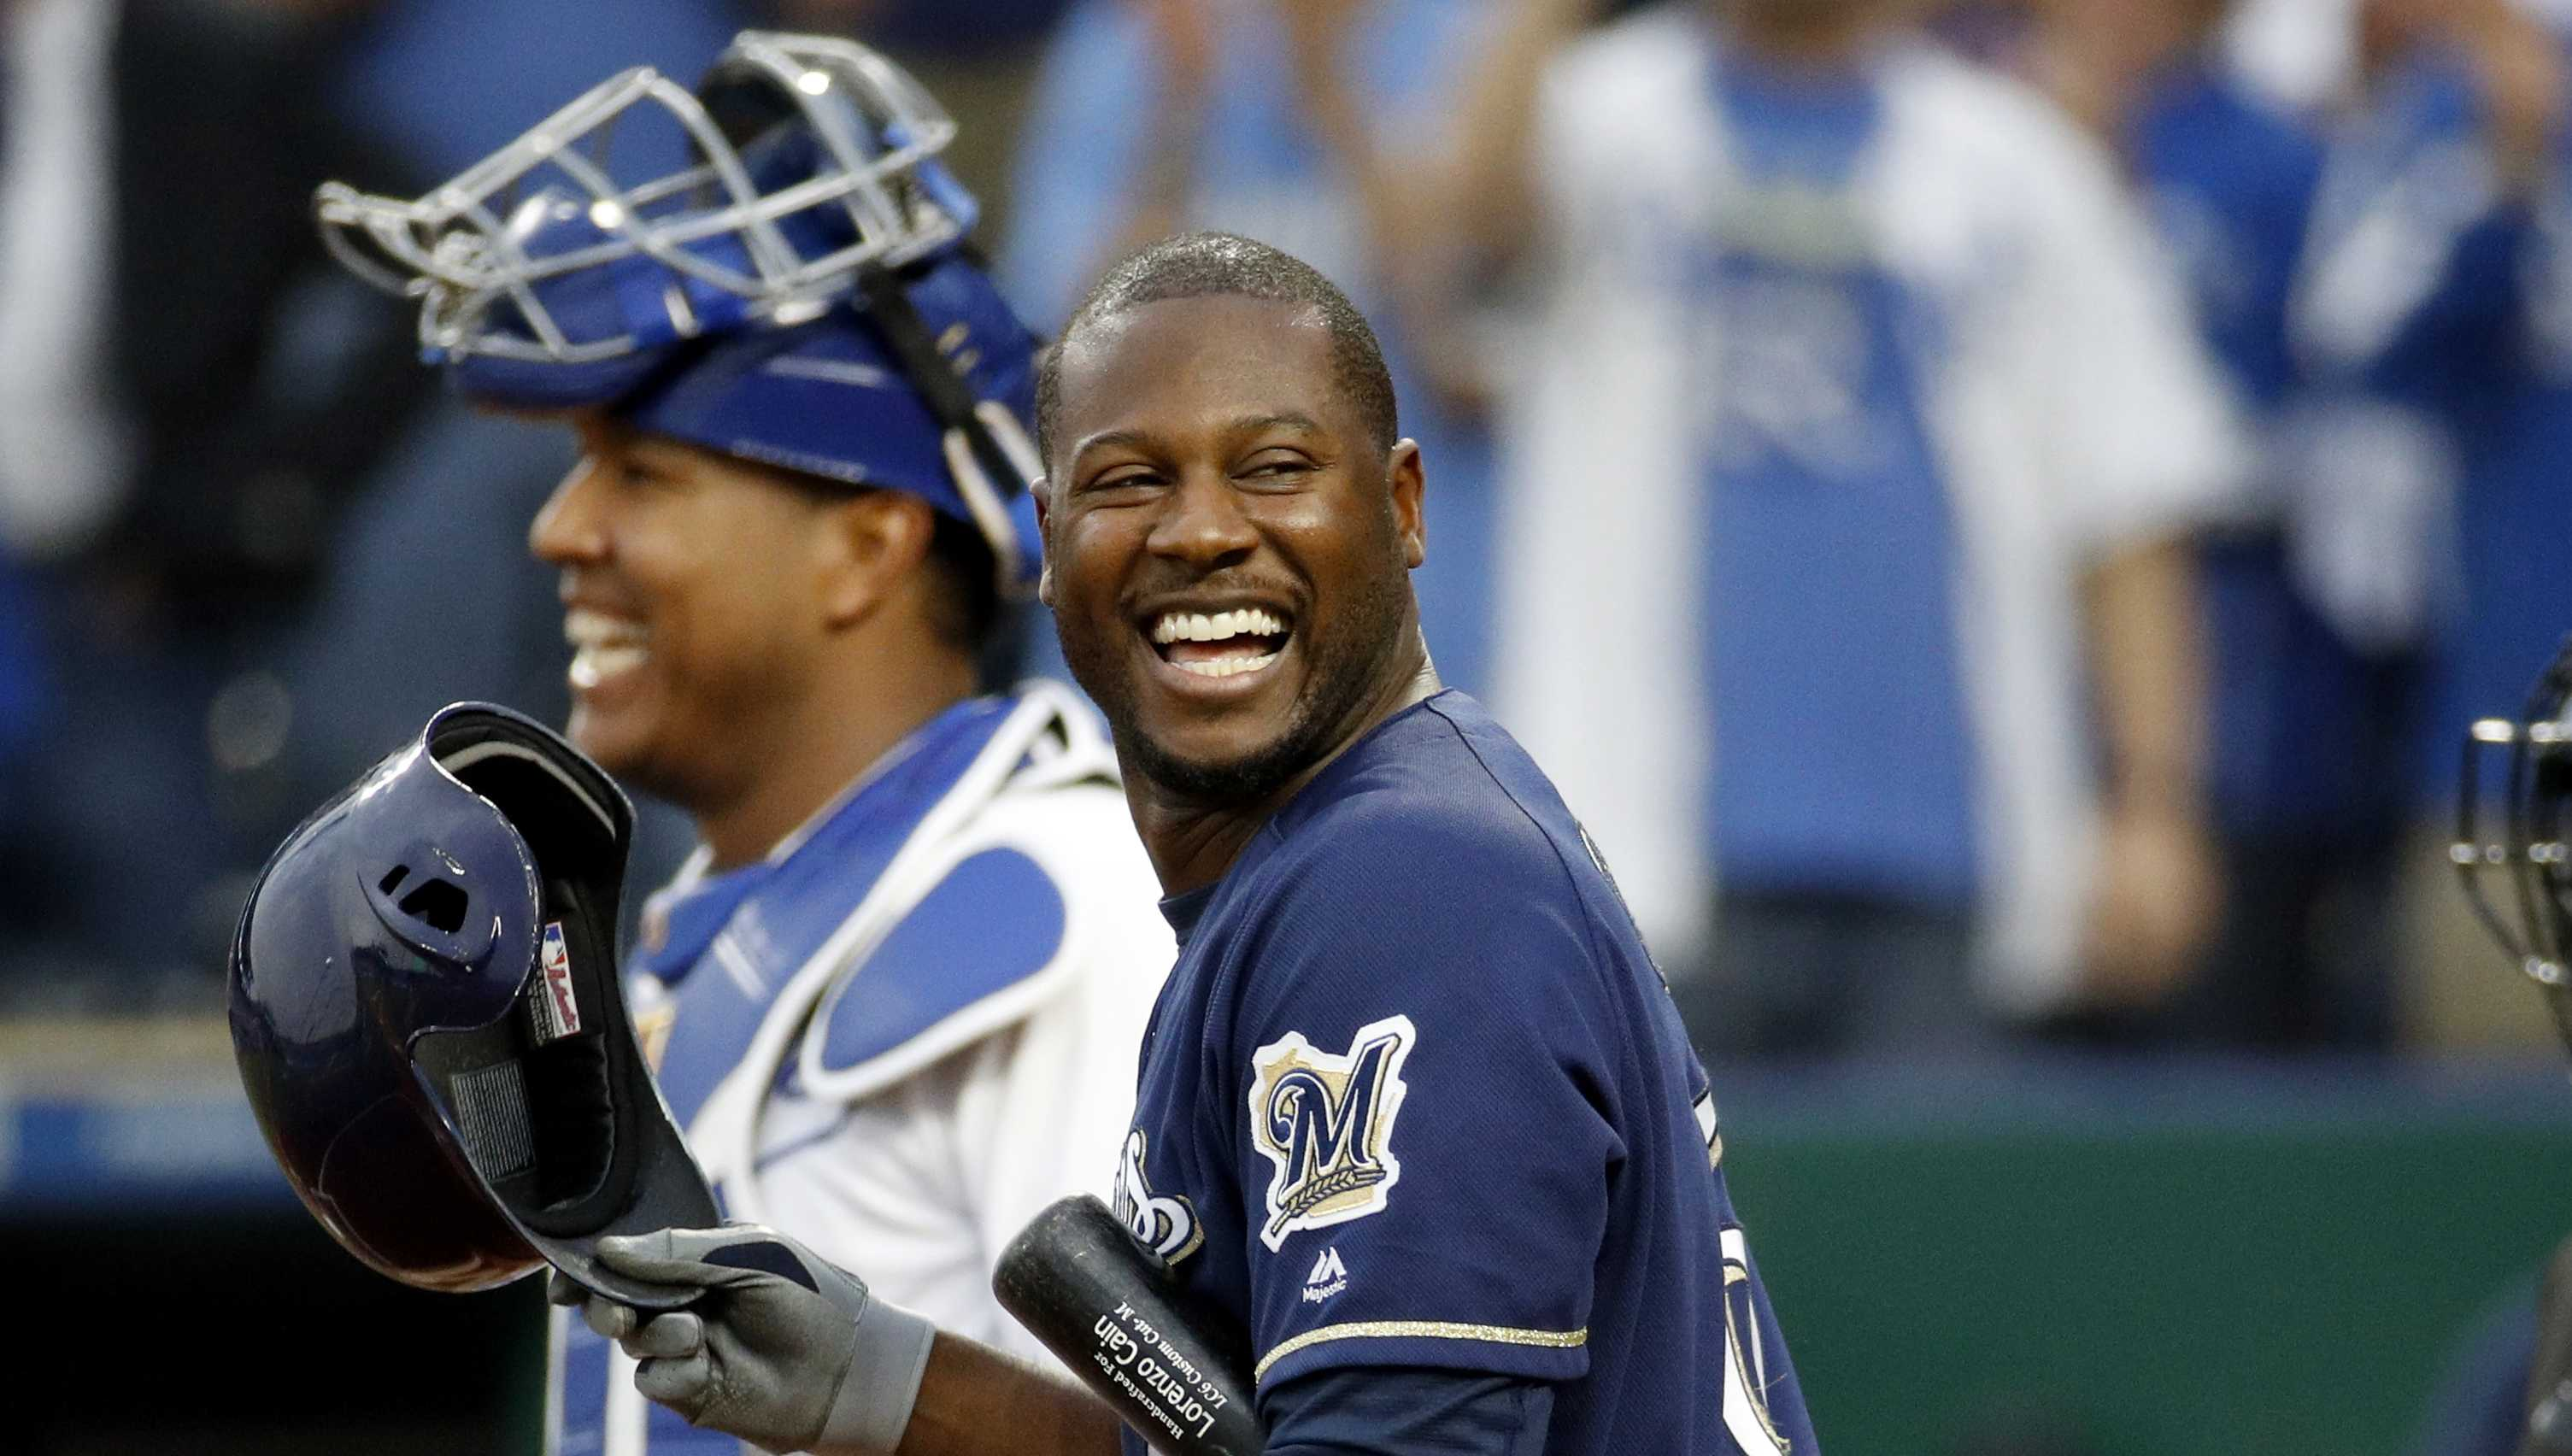 Milwaukee Brewers' Lorenzo Cain smiles at the crowd as they cheer the former Royal before his at bat during the first inning of a baseball game against the Kansas City Royals Tuesday, April 24, 2018, in Kansas City, Mo. (AP Photo/Charlie Riedel)